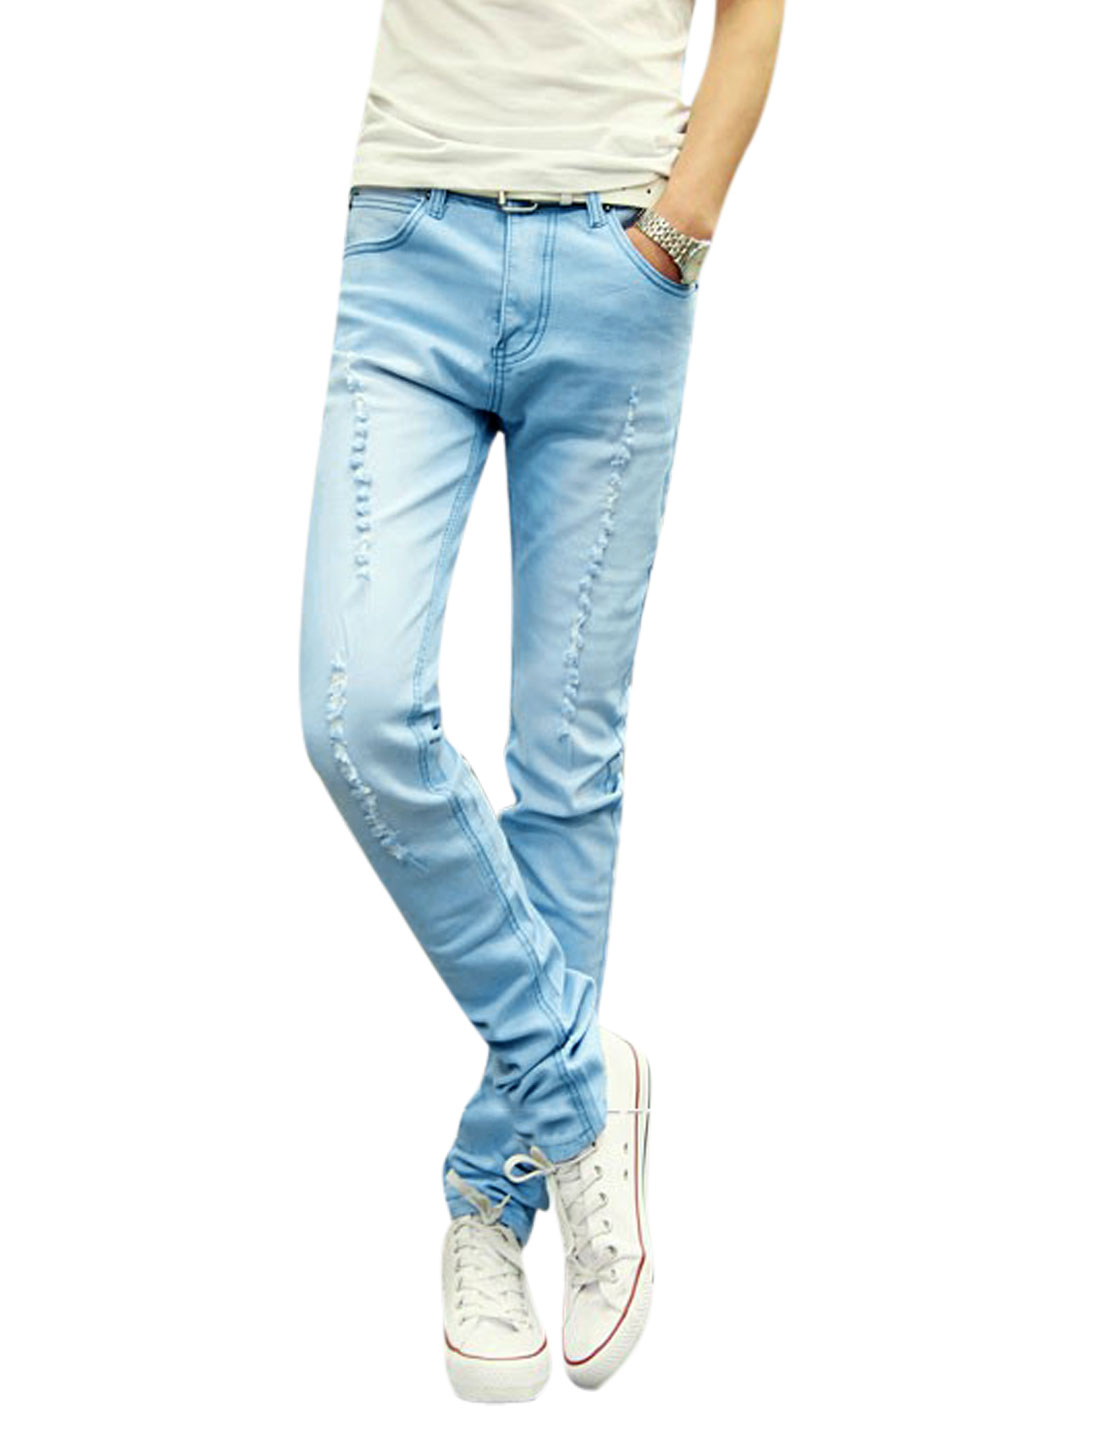 Men Distressed Slim Fit Washed Denim Casual Jeans Light Blue W30